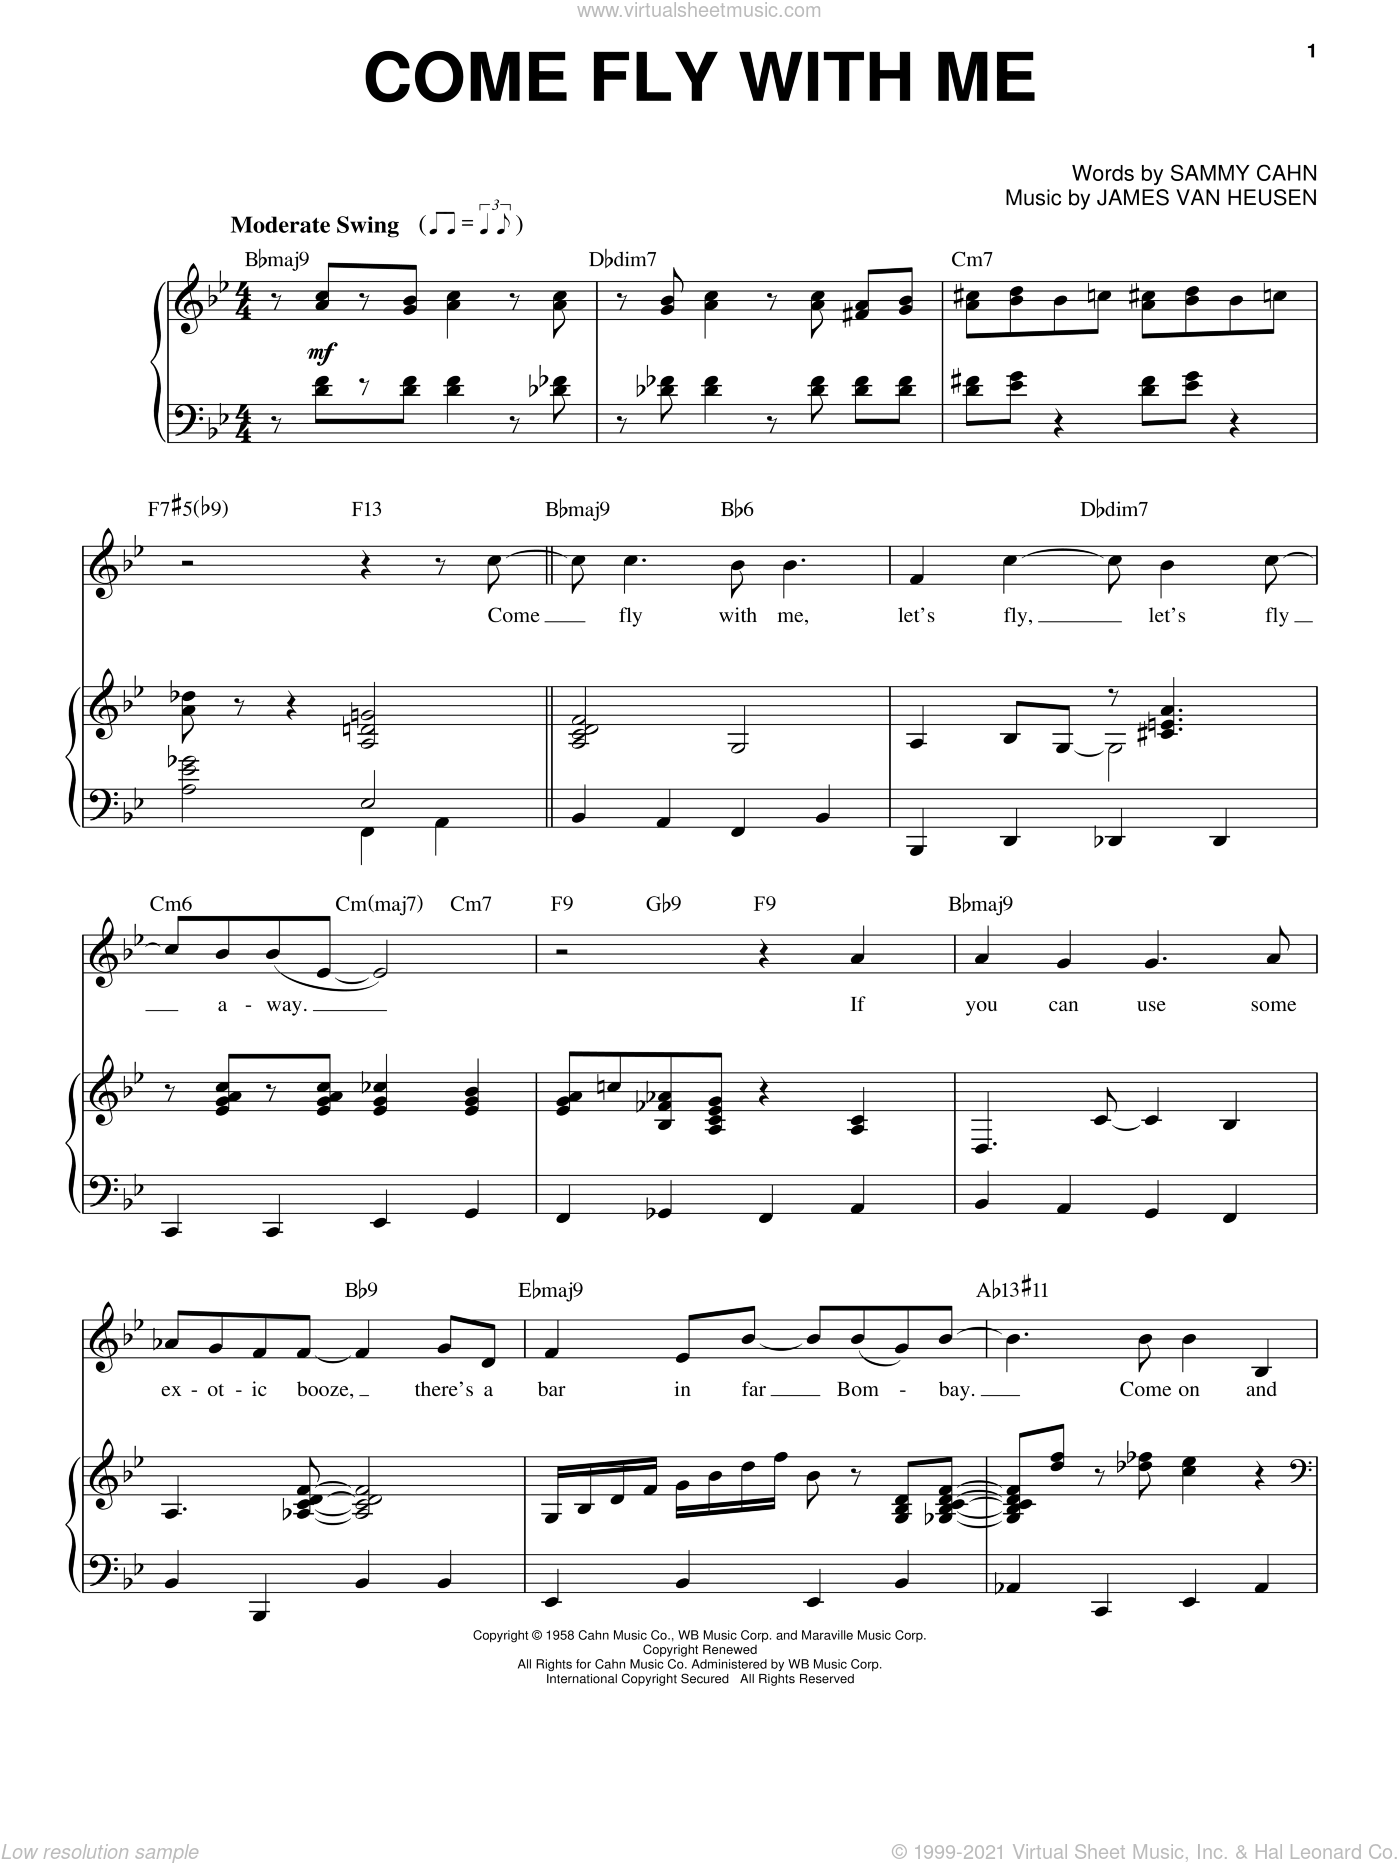 Come Fly With Me sheet music for voice and piano by Frank Sinatra, Dean Martin, Sammy Davis, Jr., Jimmy van Heusen and Sammy Cahn, intermediate skill level